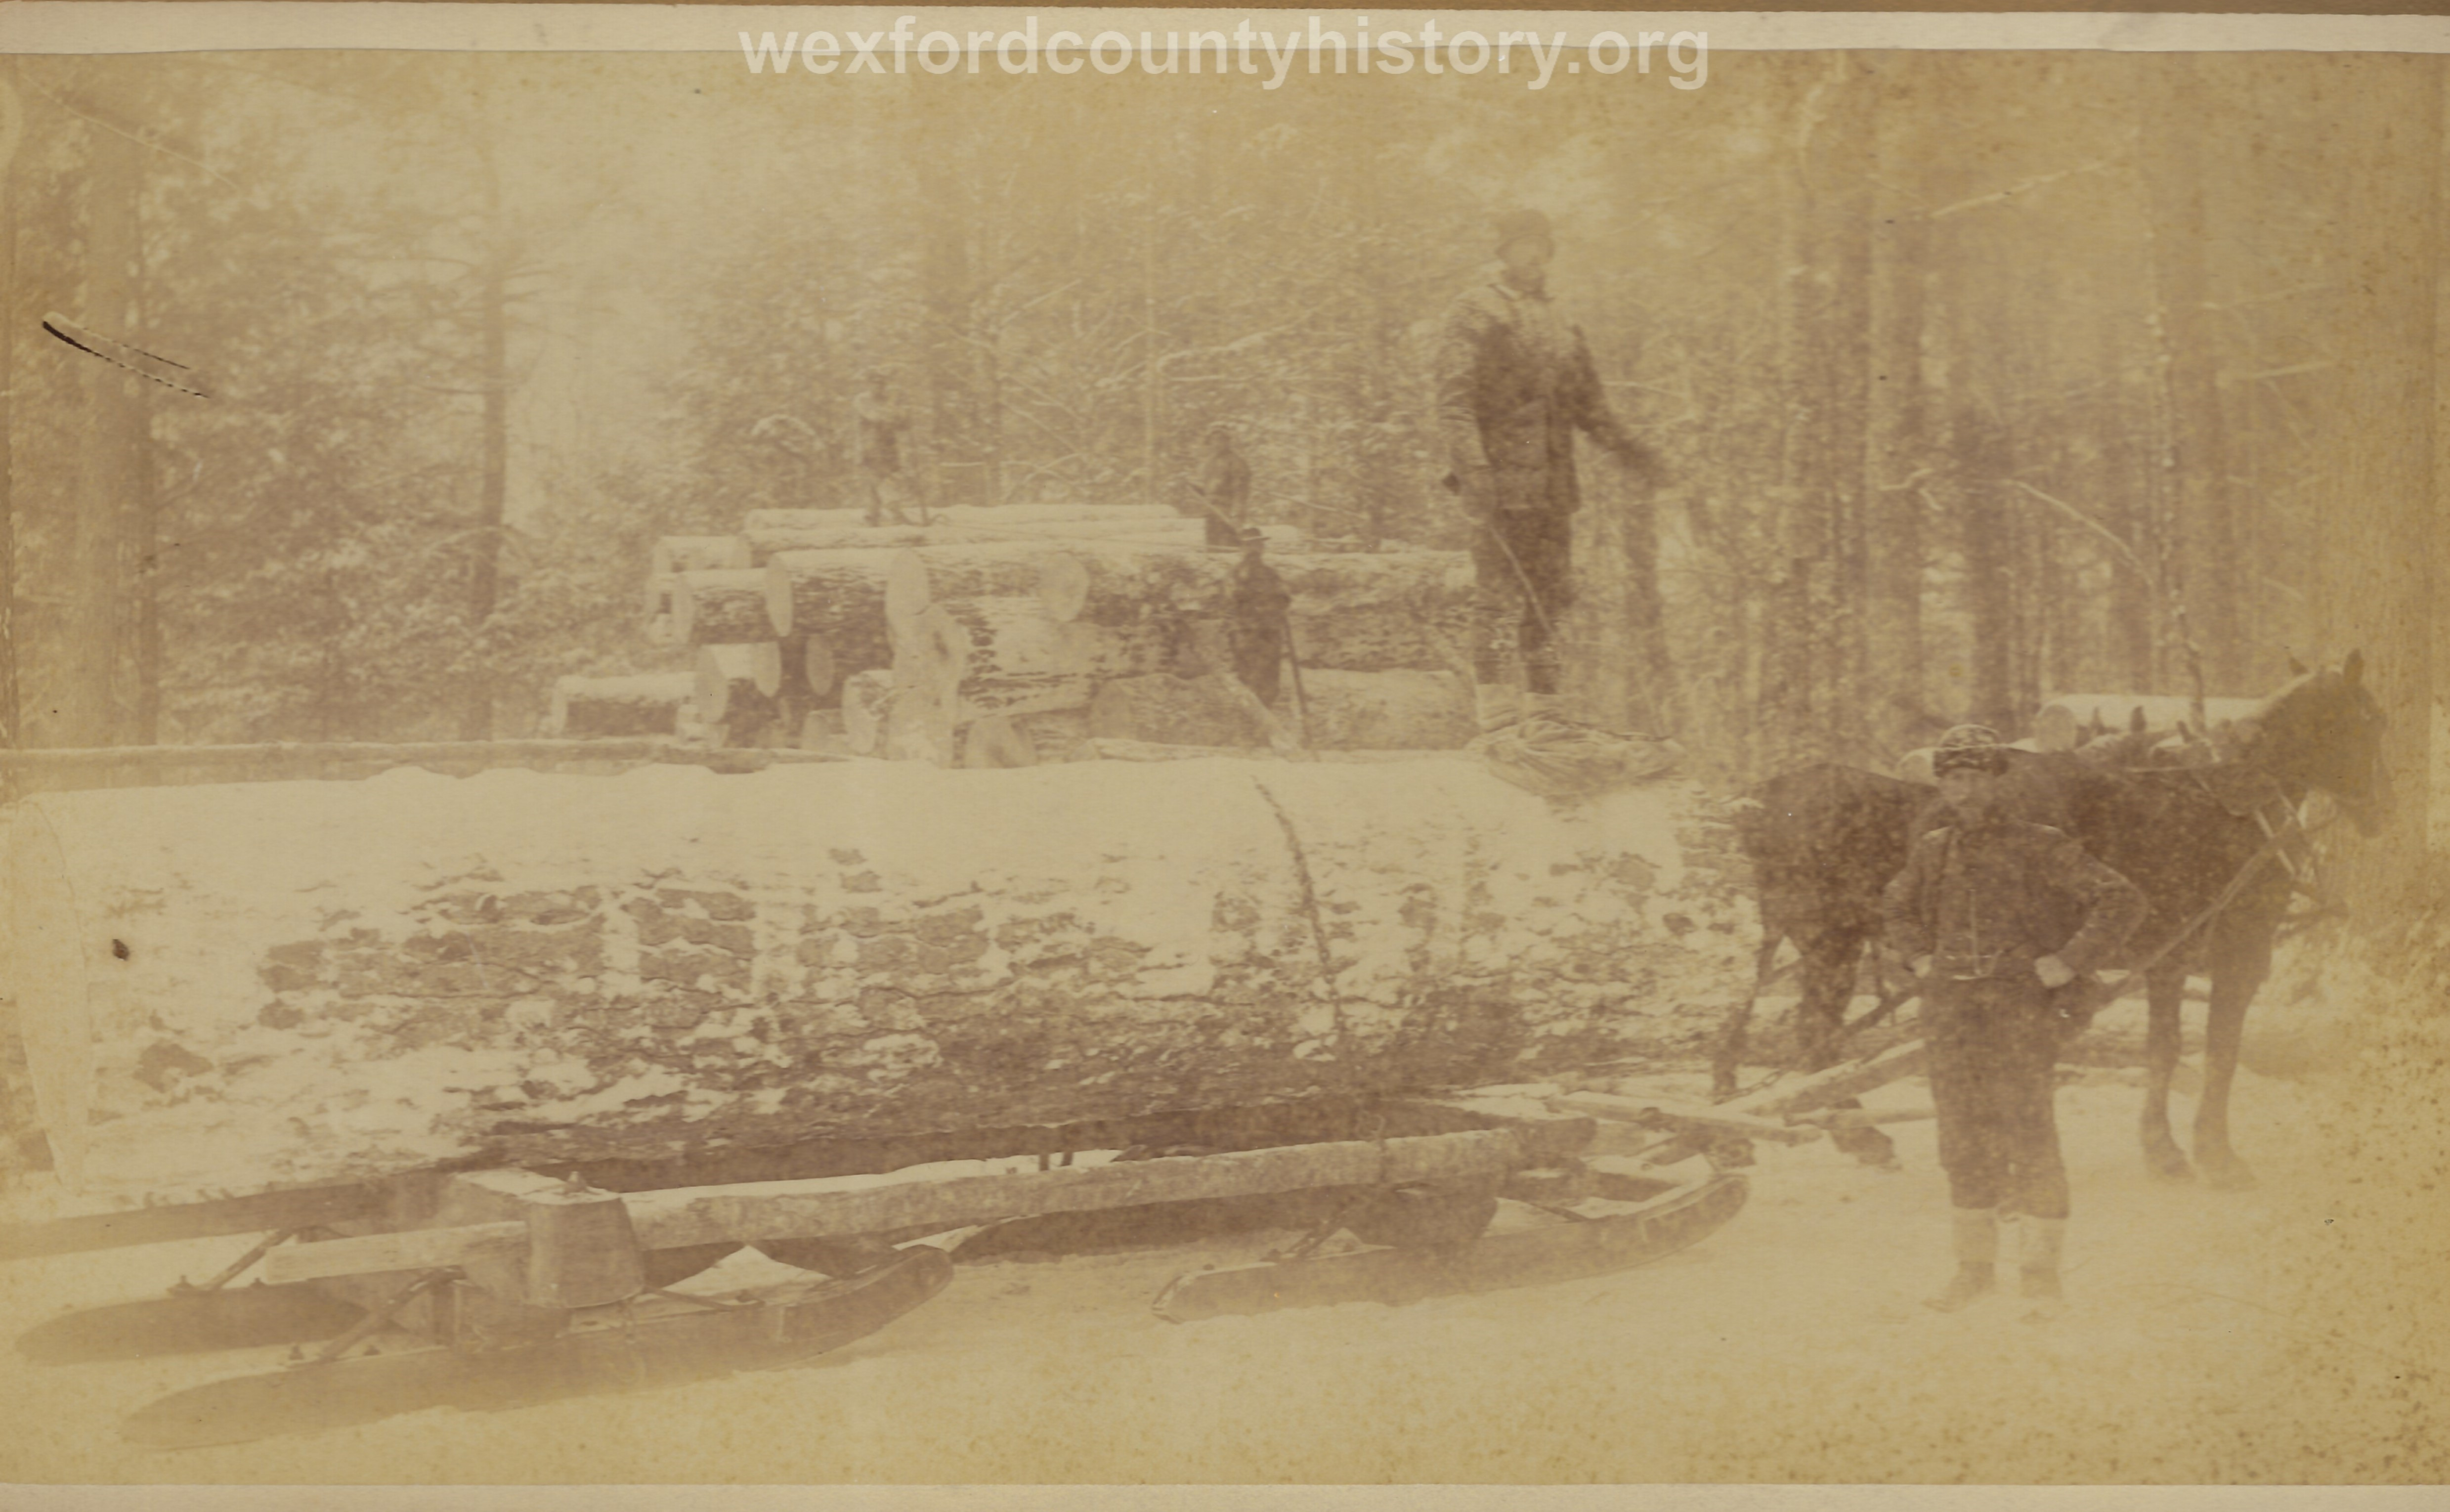 Cadillac-Lumber-Horse-Team-Pulling-Load-Of-Logs-On-Sled-10